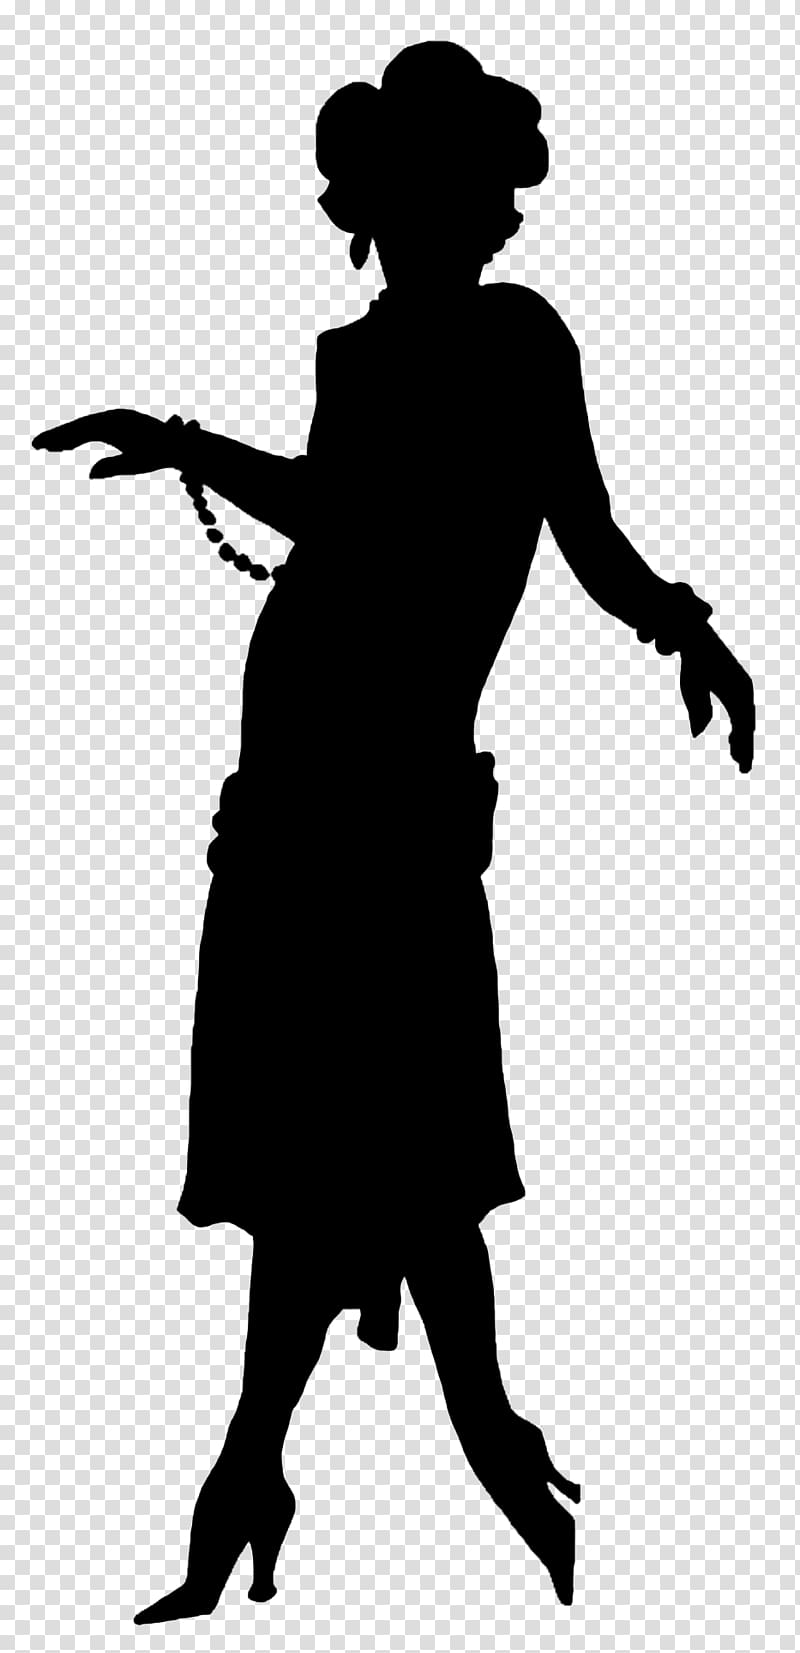 1920s Silhouette , the incredibles transparent background.